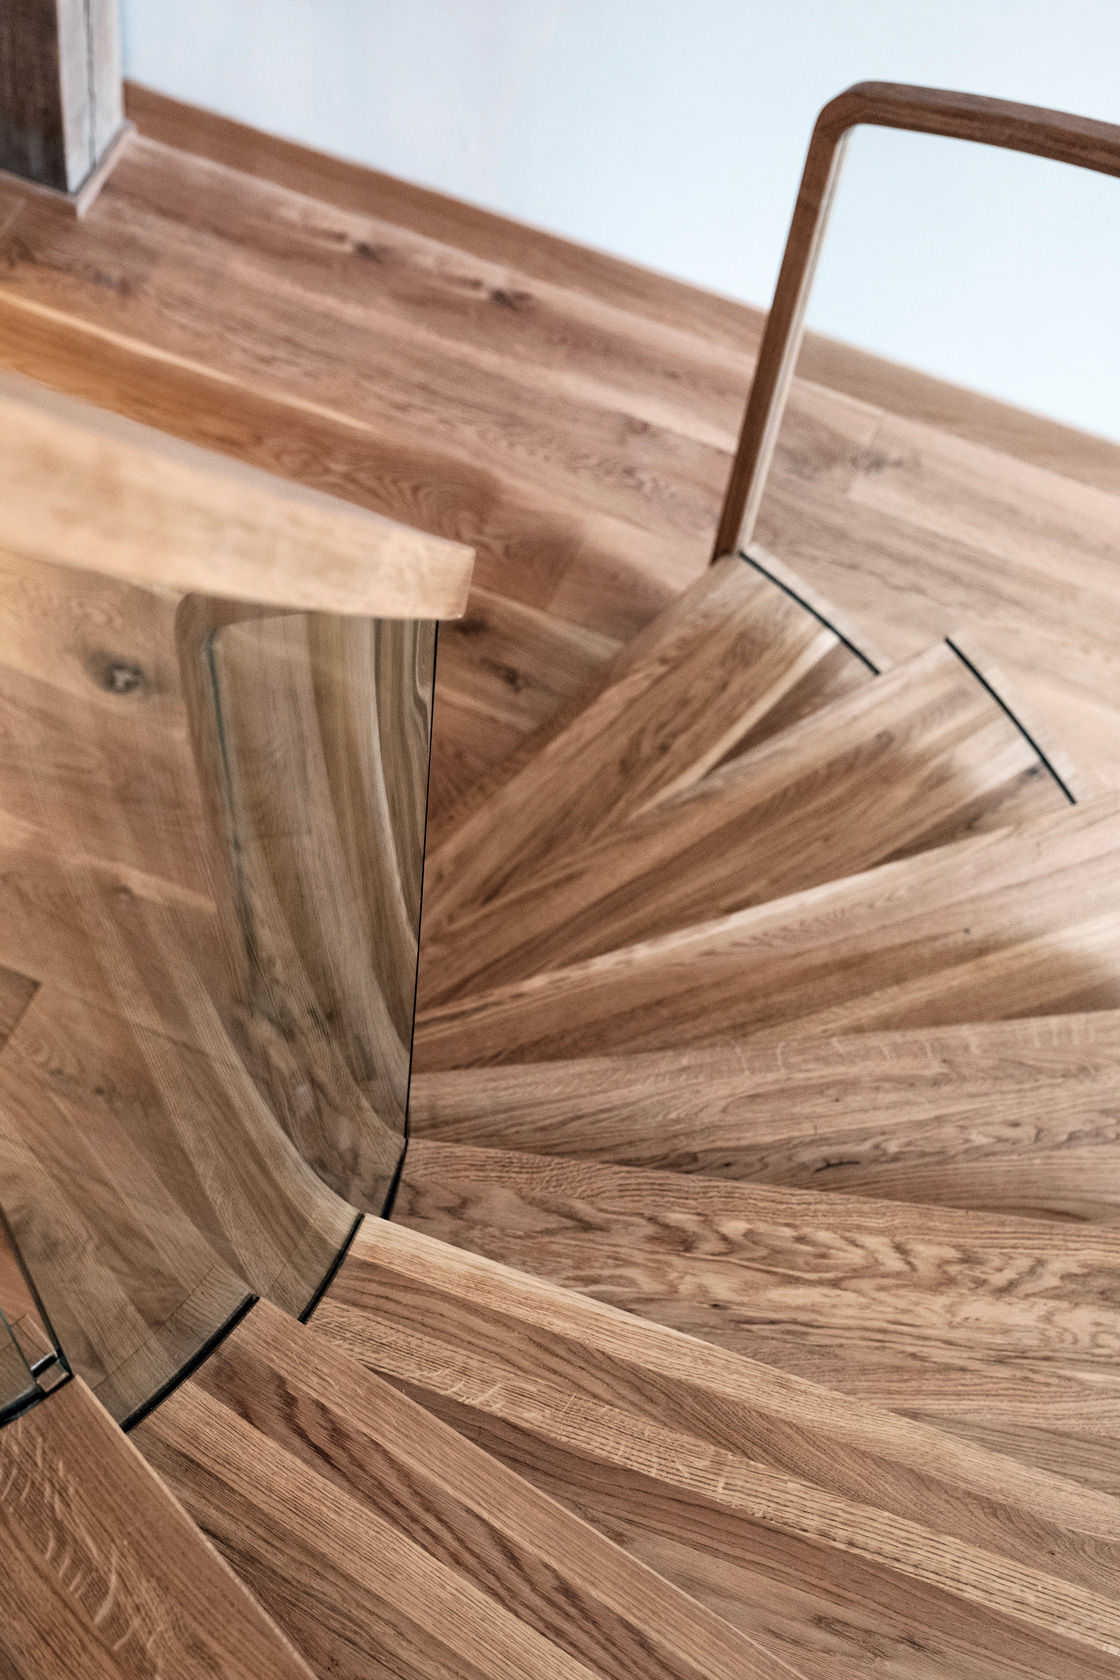 Looking downwards view of curved oak staircase centrepiece with curved glass and curved handrails.